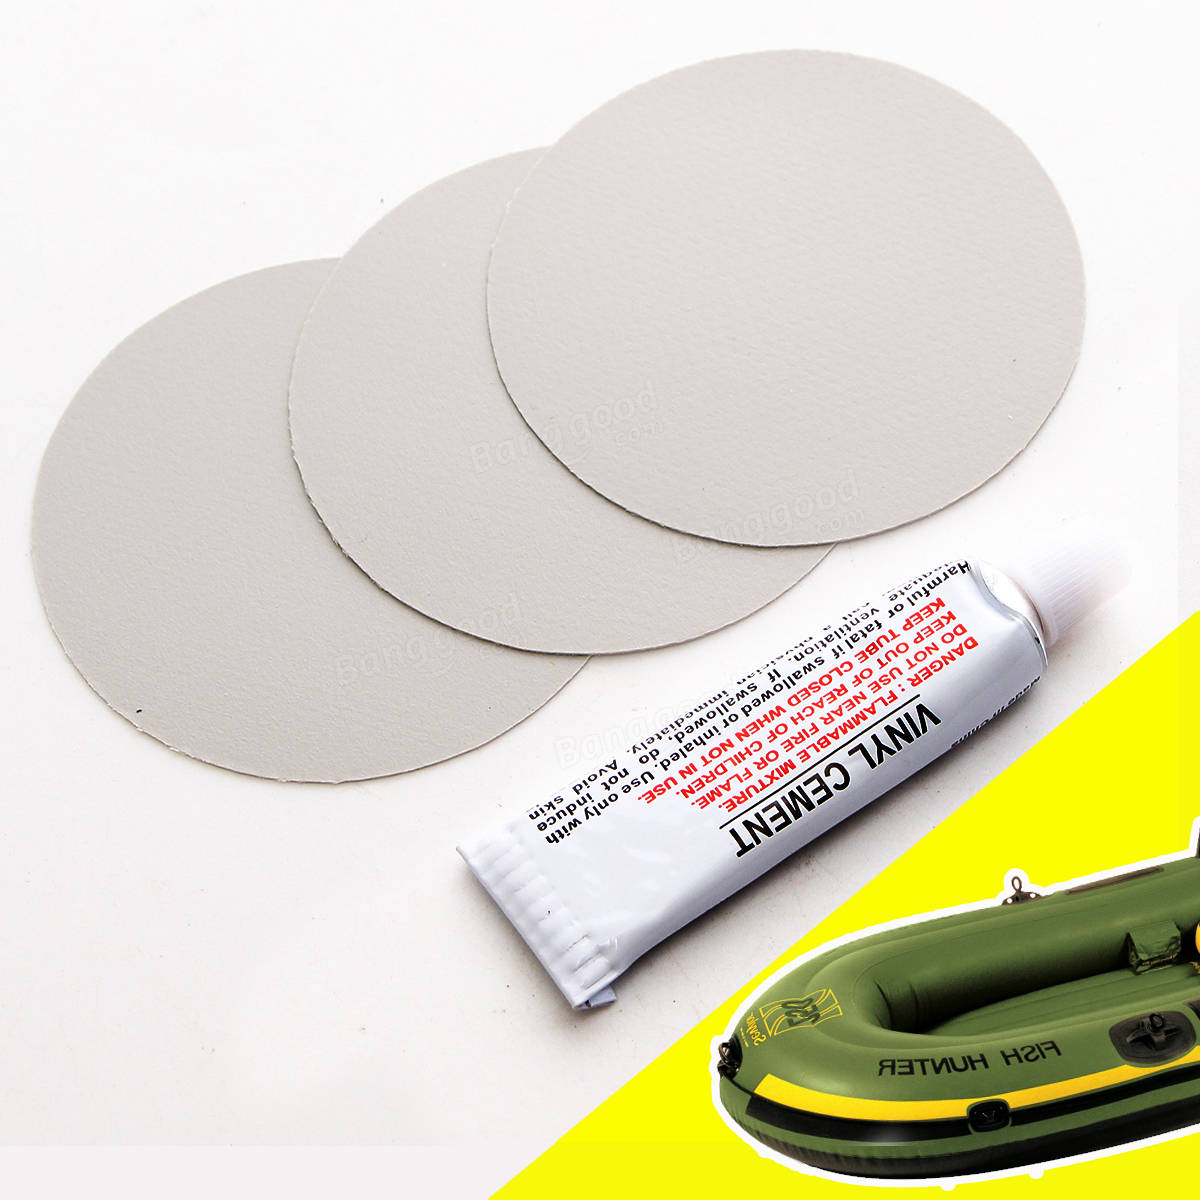 3Pcs Circular PVC Repair Patches with Vinyl Cement Glue For Rubber Boat